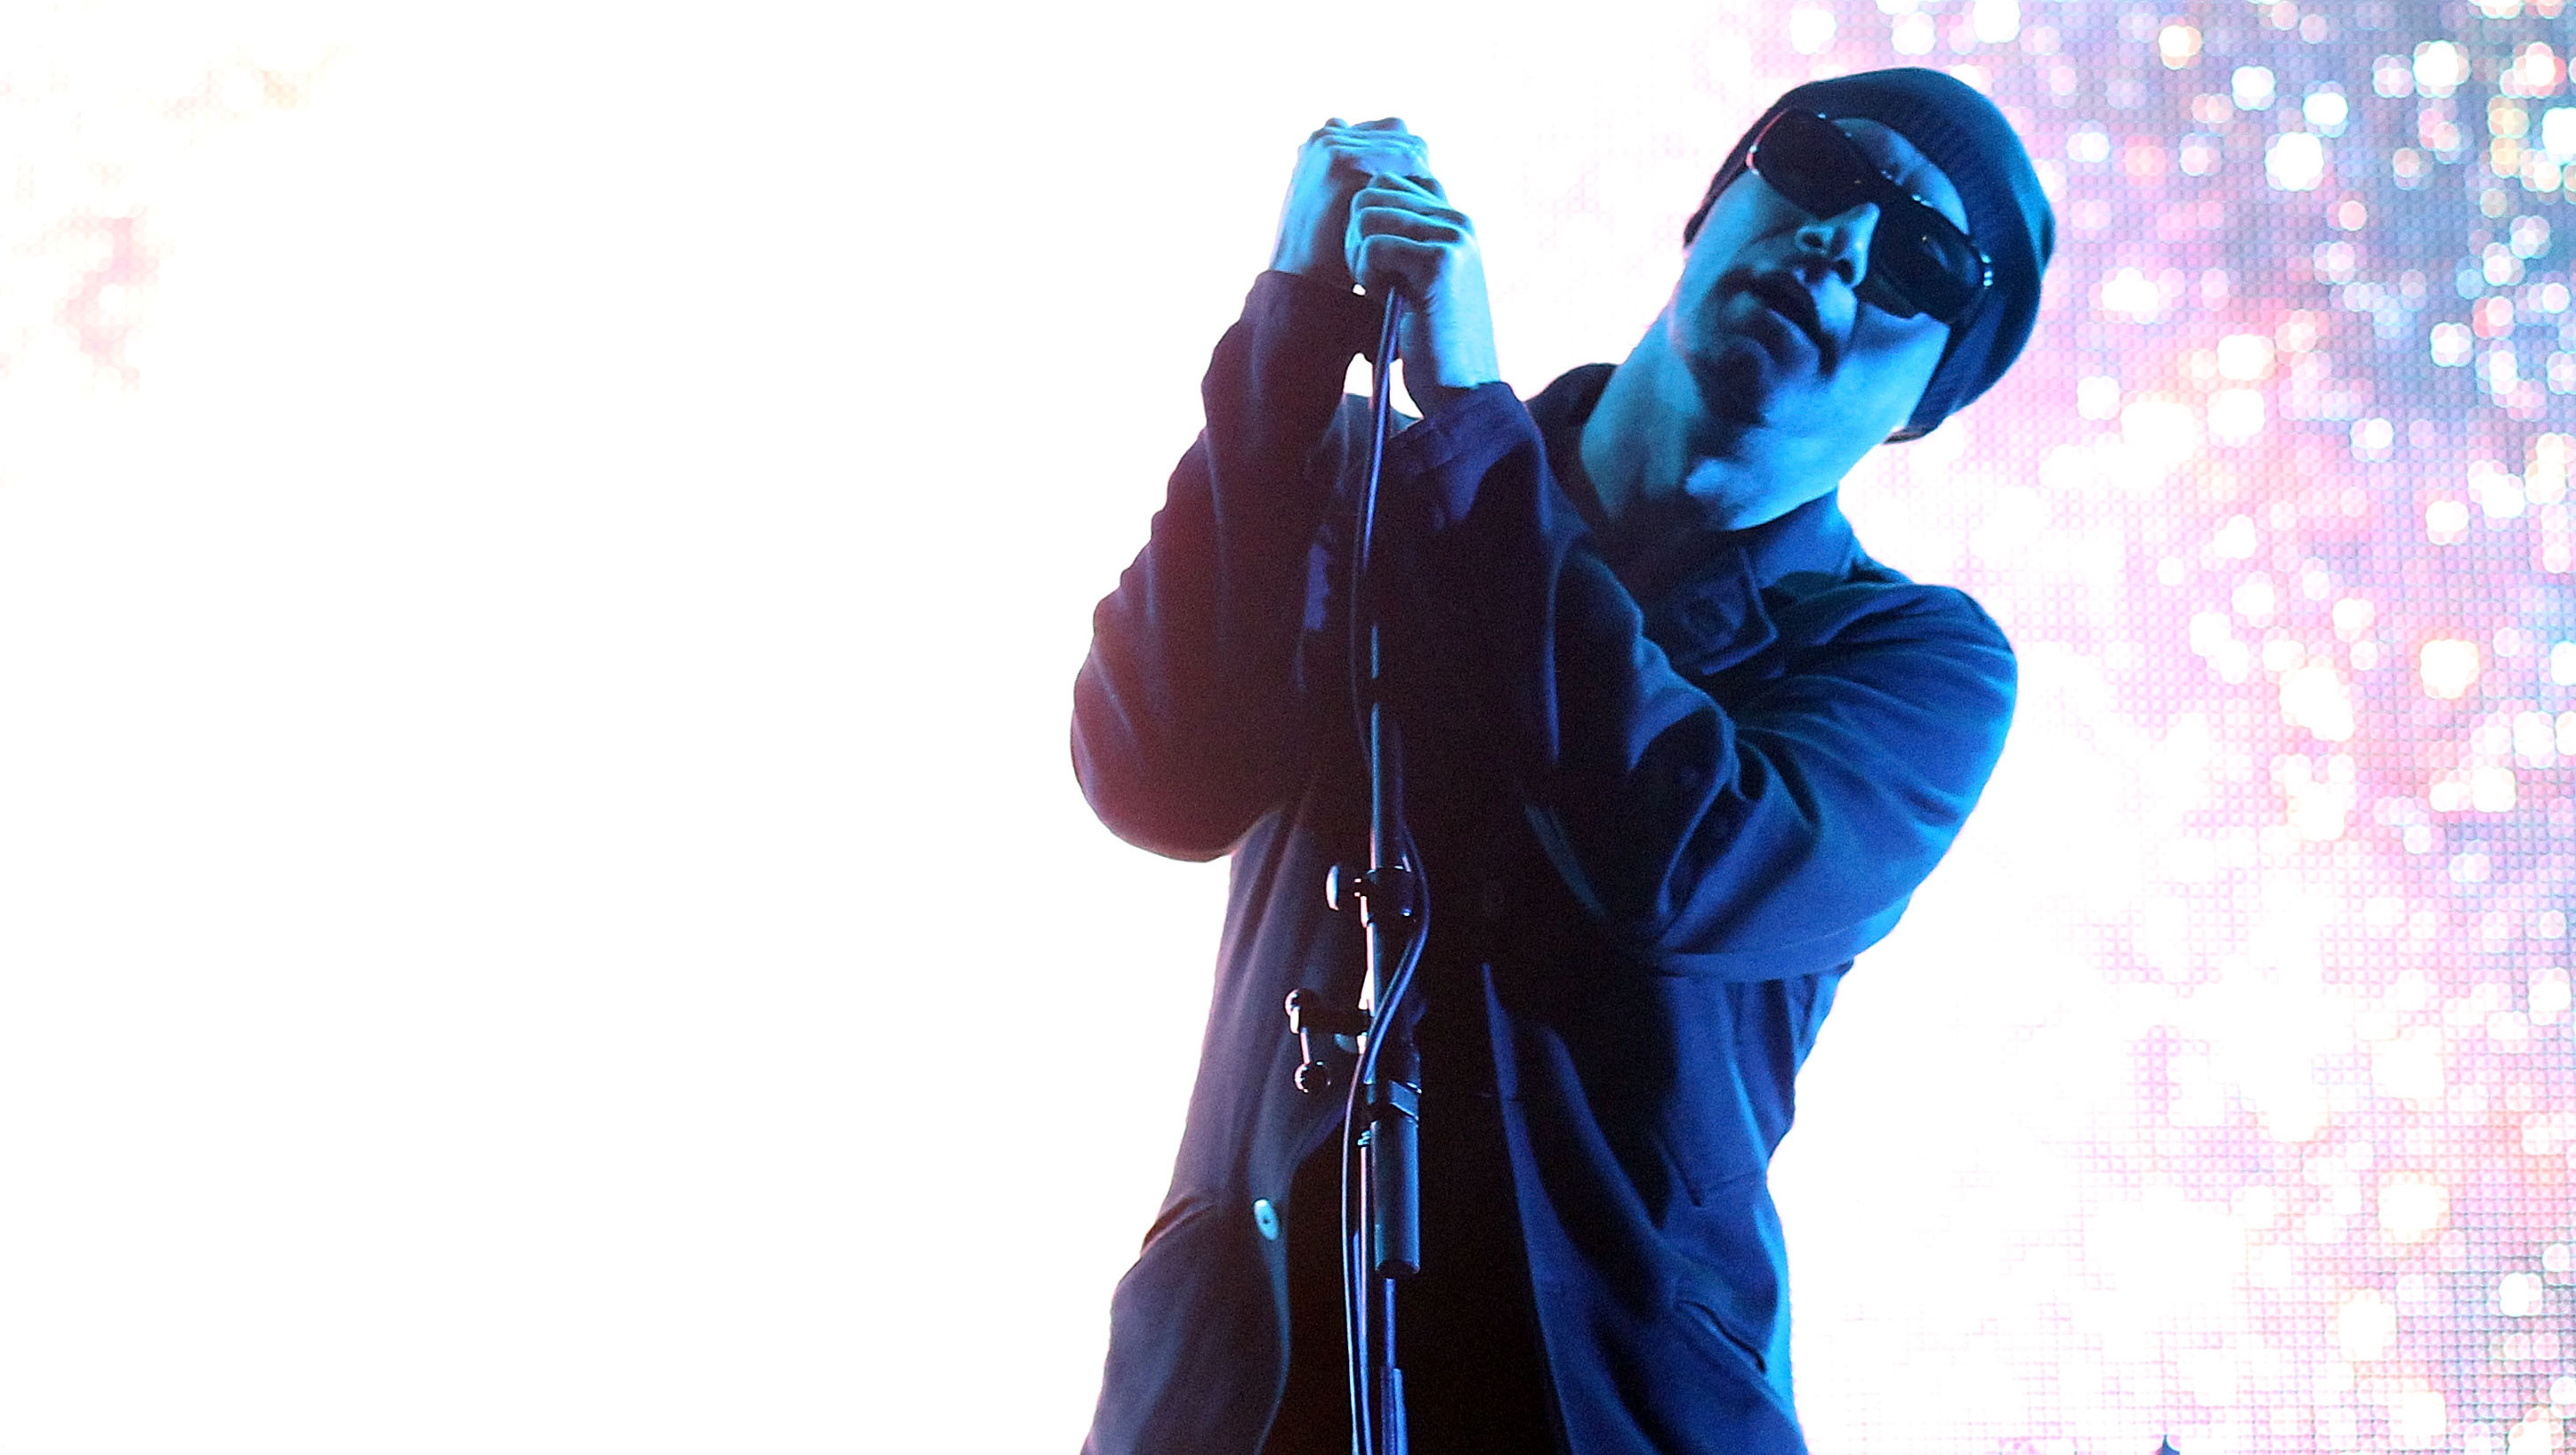 MAITLAND, AUSTRALIA - MAY 07:  James Lavelle of Unkle performs on stage at the Groovin The Moo Festival on May 7, 2011 in Mai